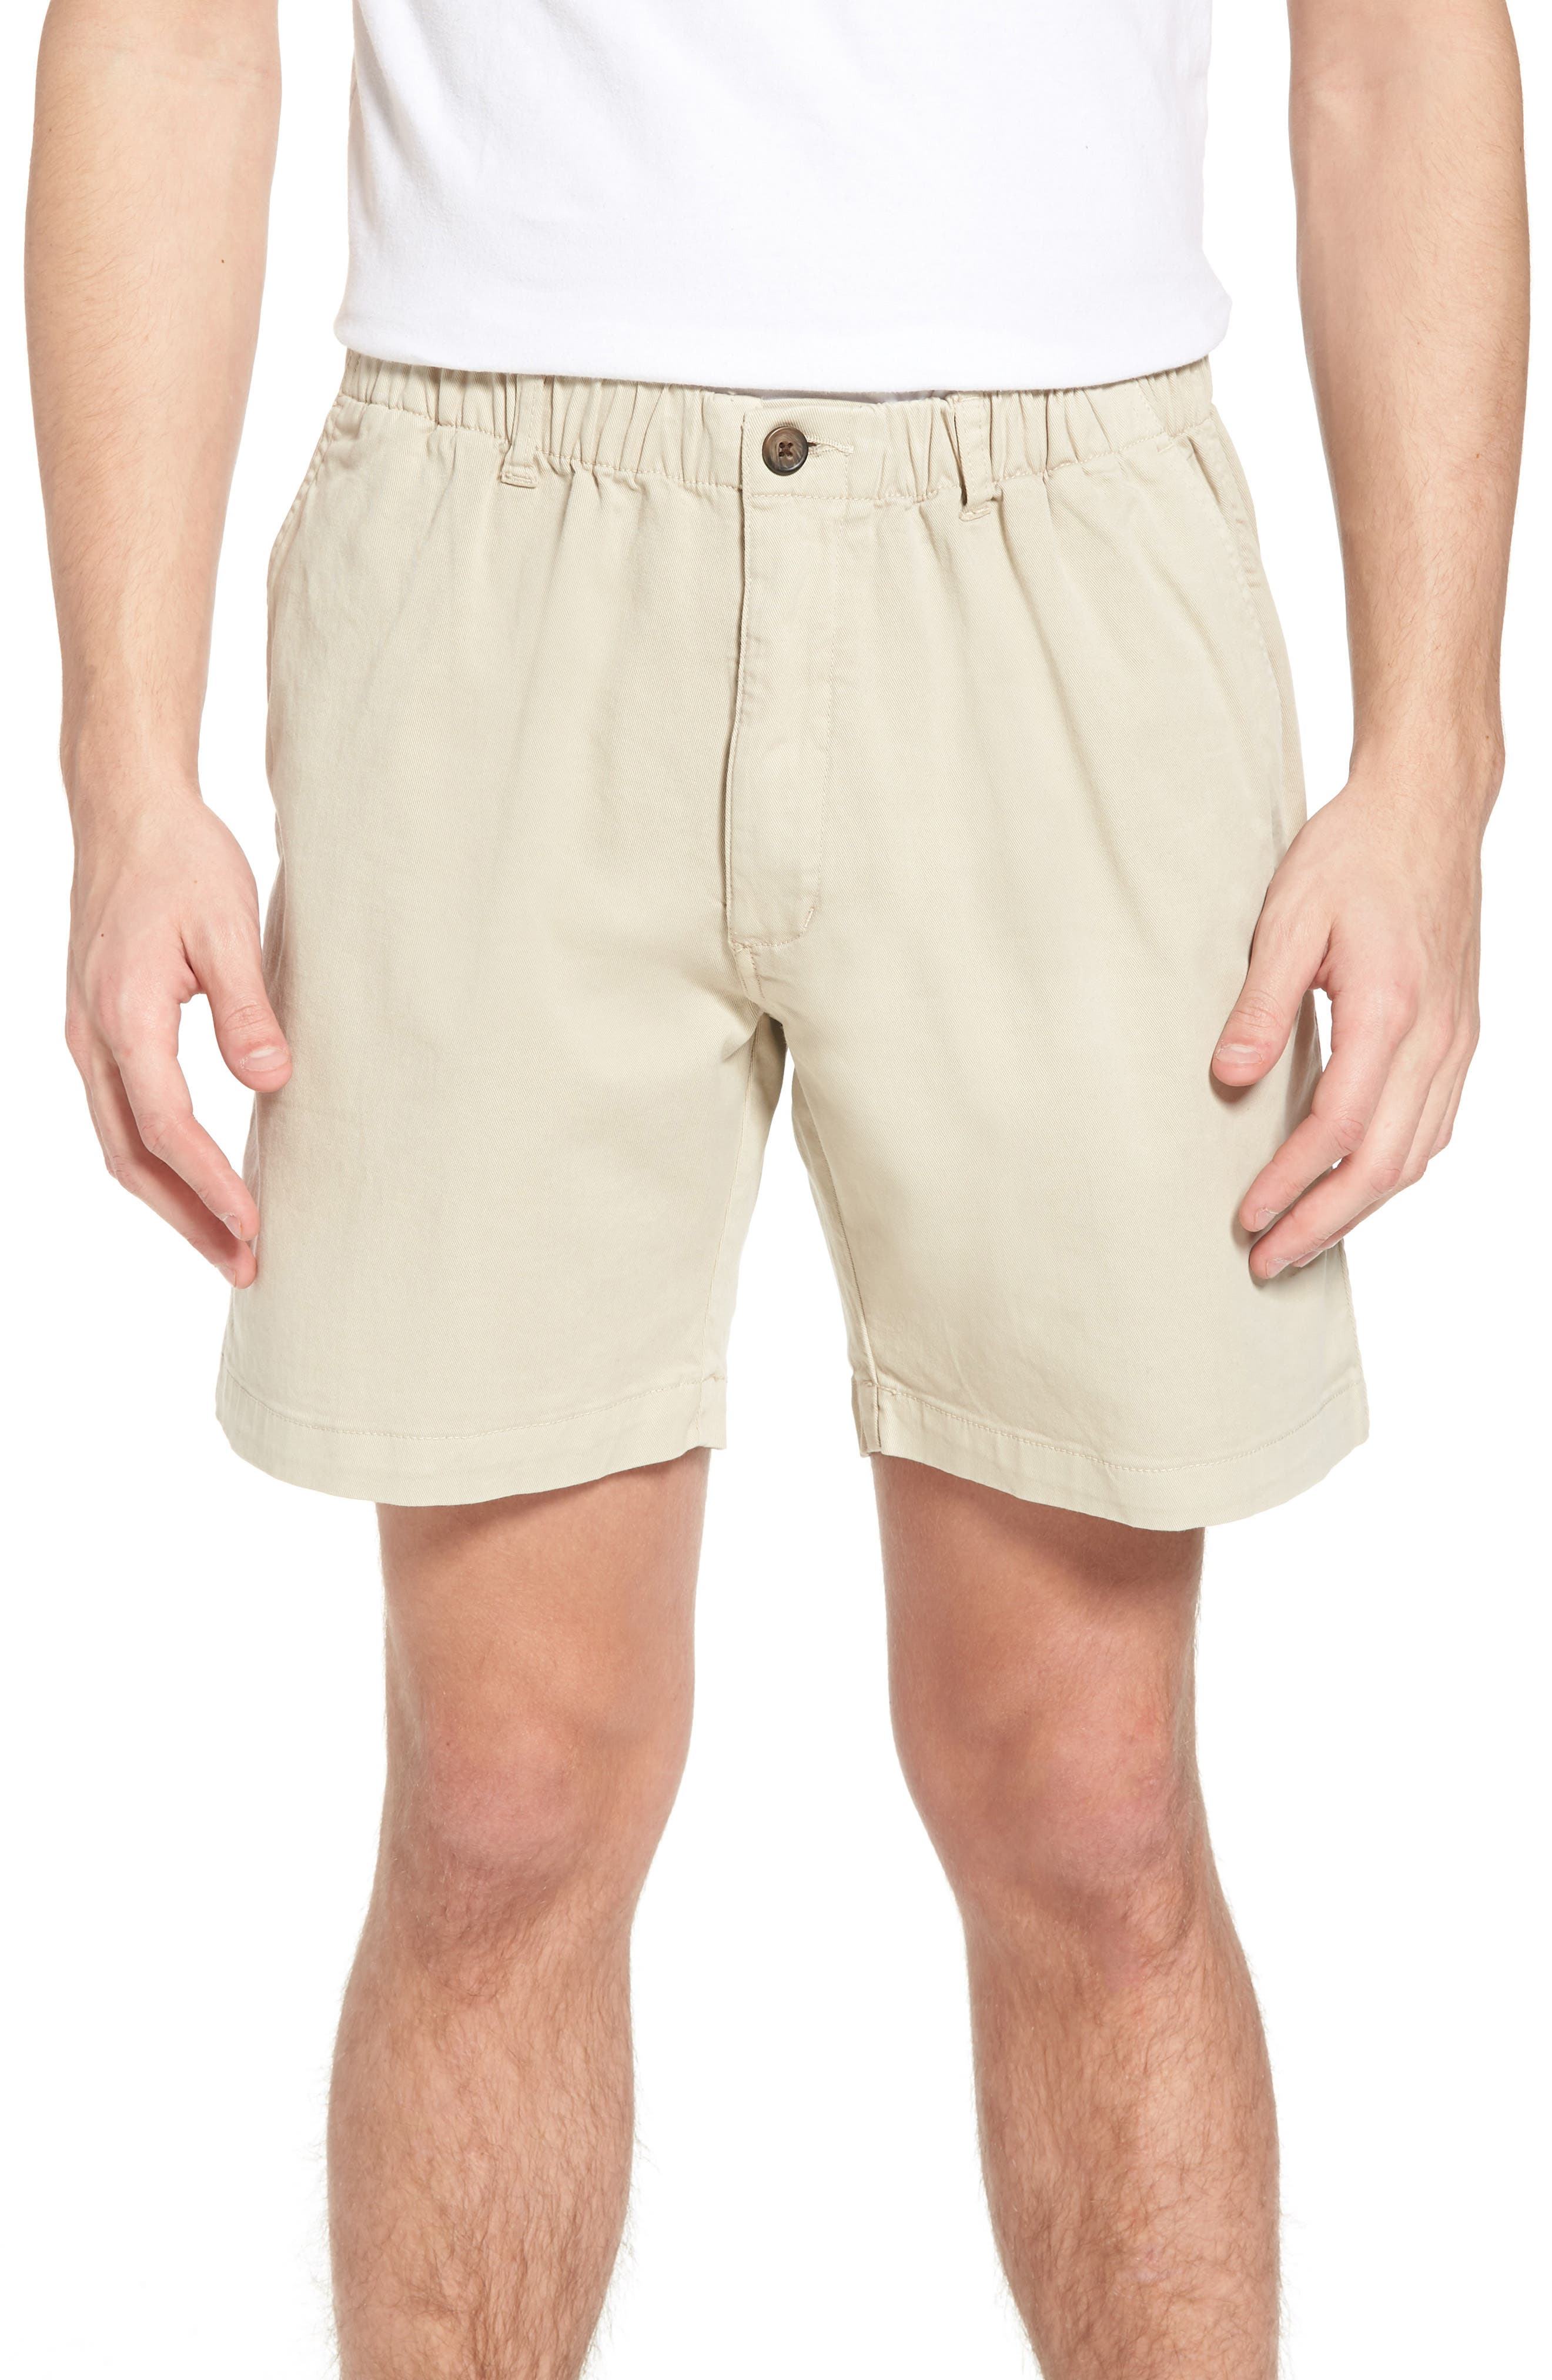 7in Snappers Elastic Waist Shorts,                             Main thumbnail 1, color,                             STONE